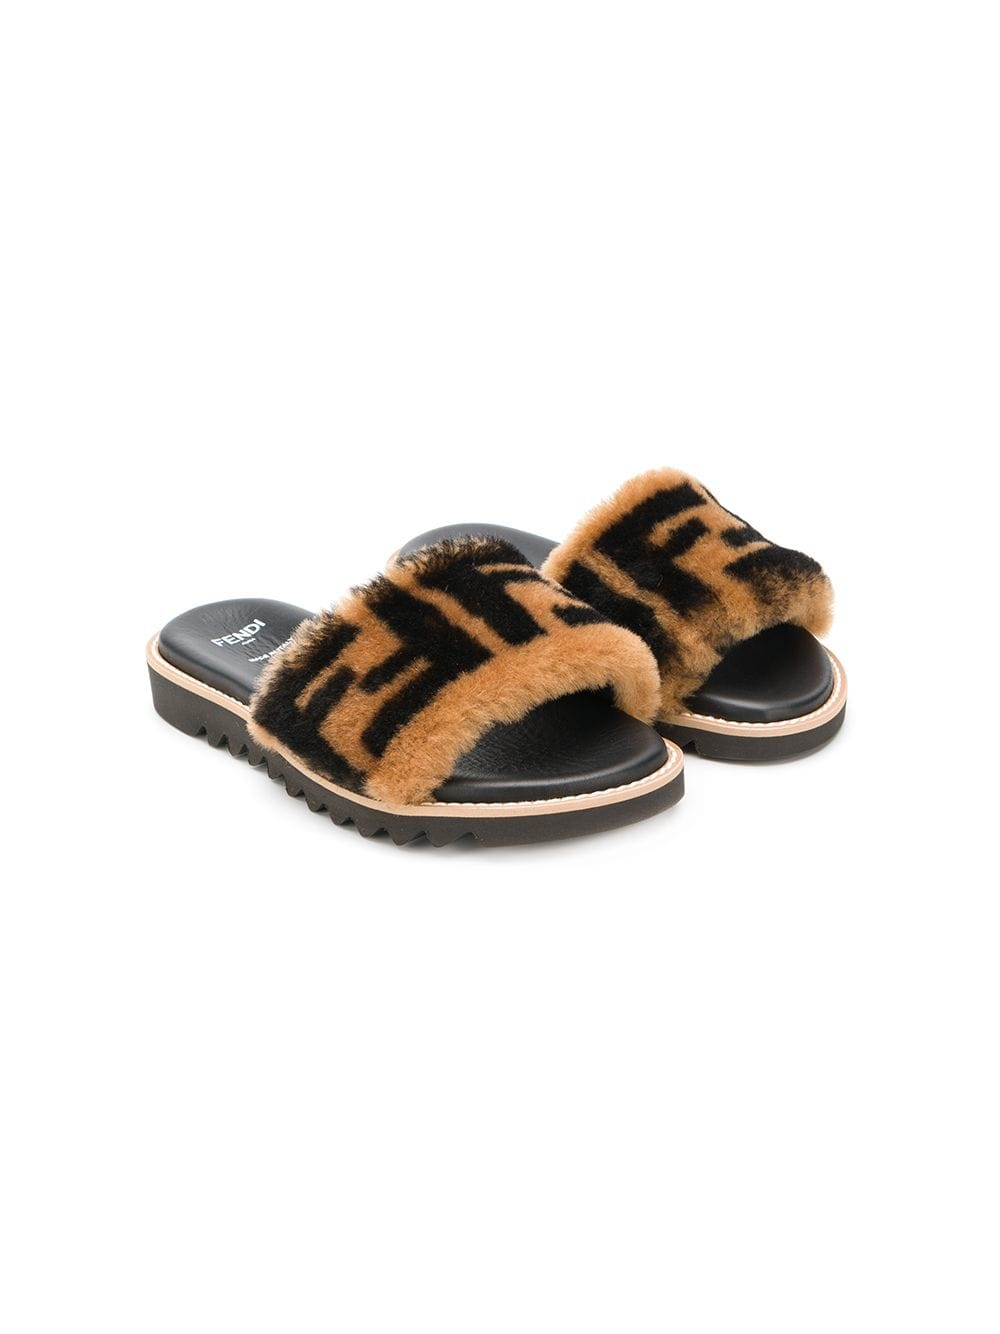 Fendi Kids printed FF logo sandals | Fendi Kids